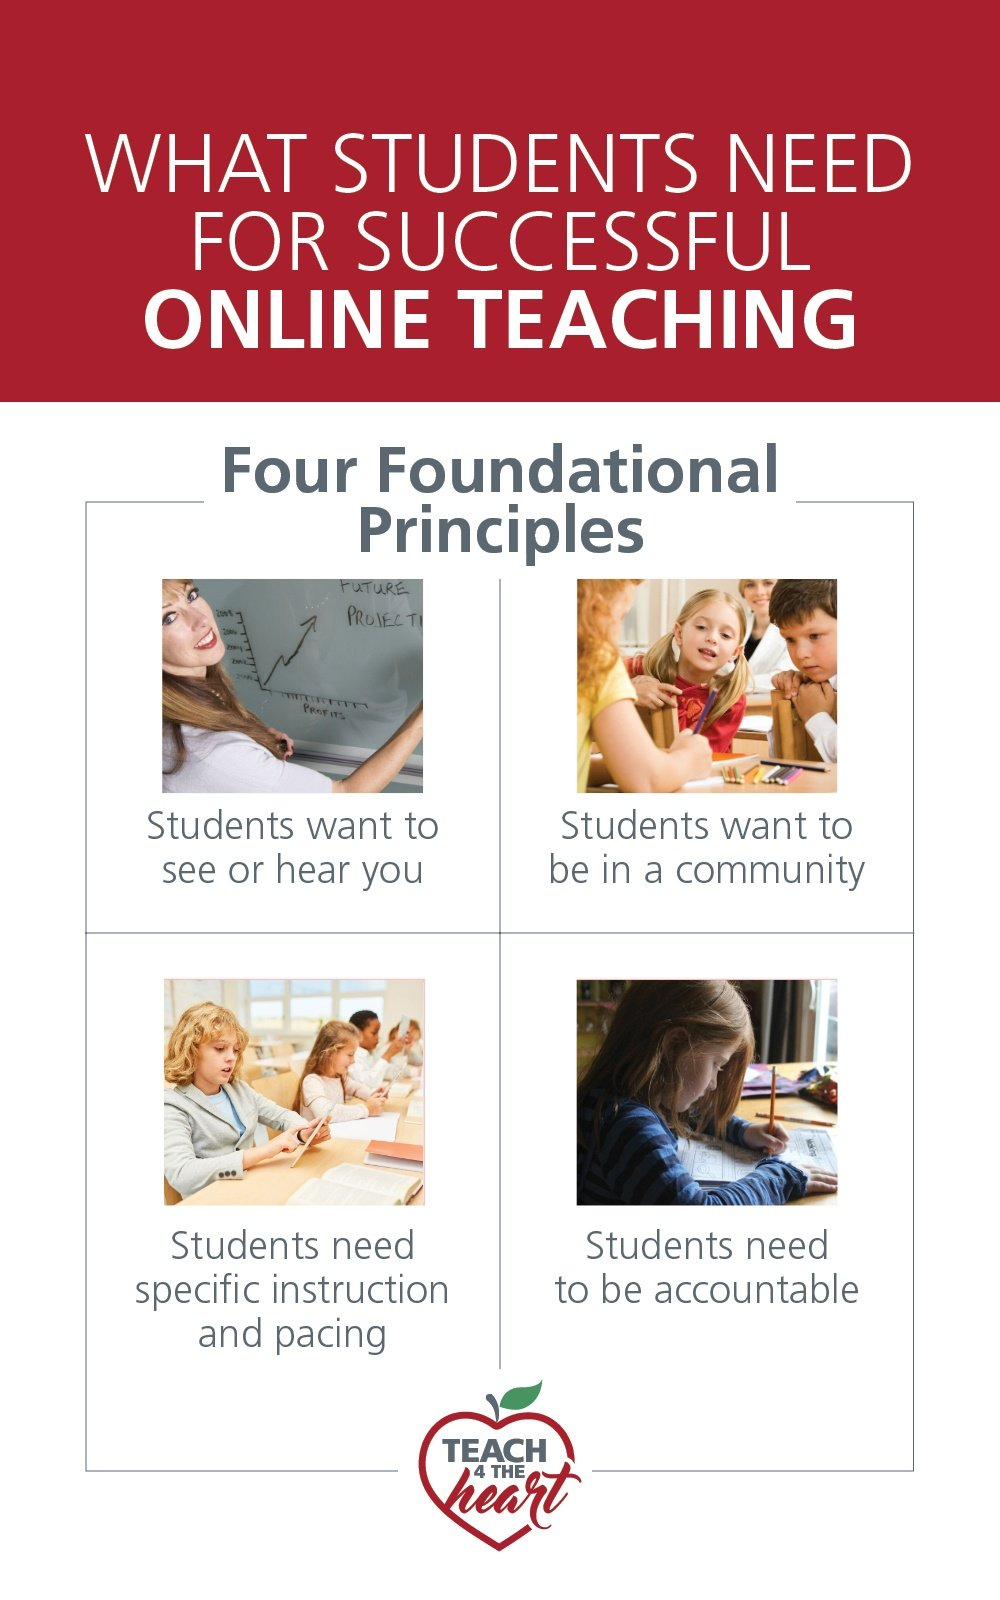 What Students Need for Successful Online Teaching